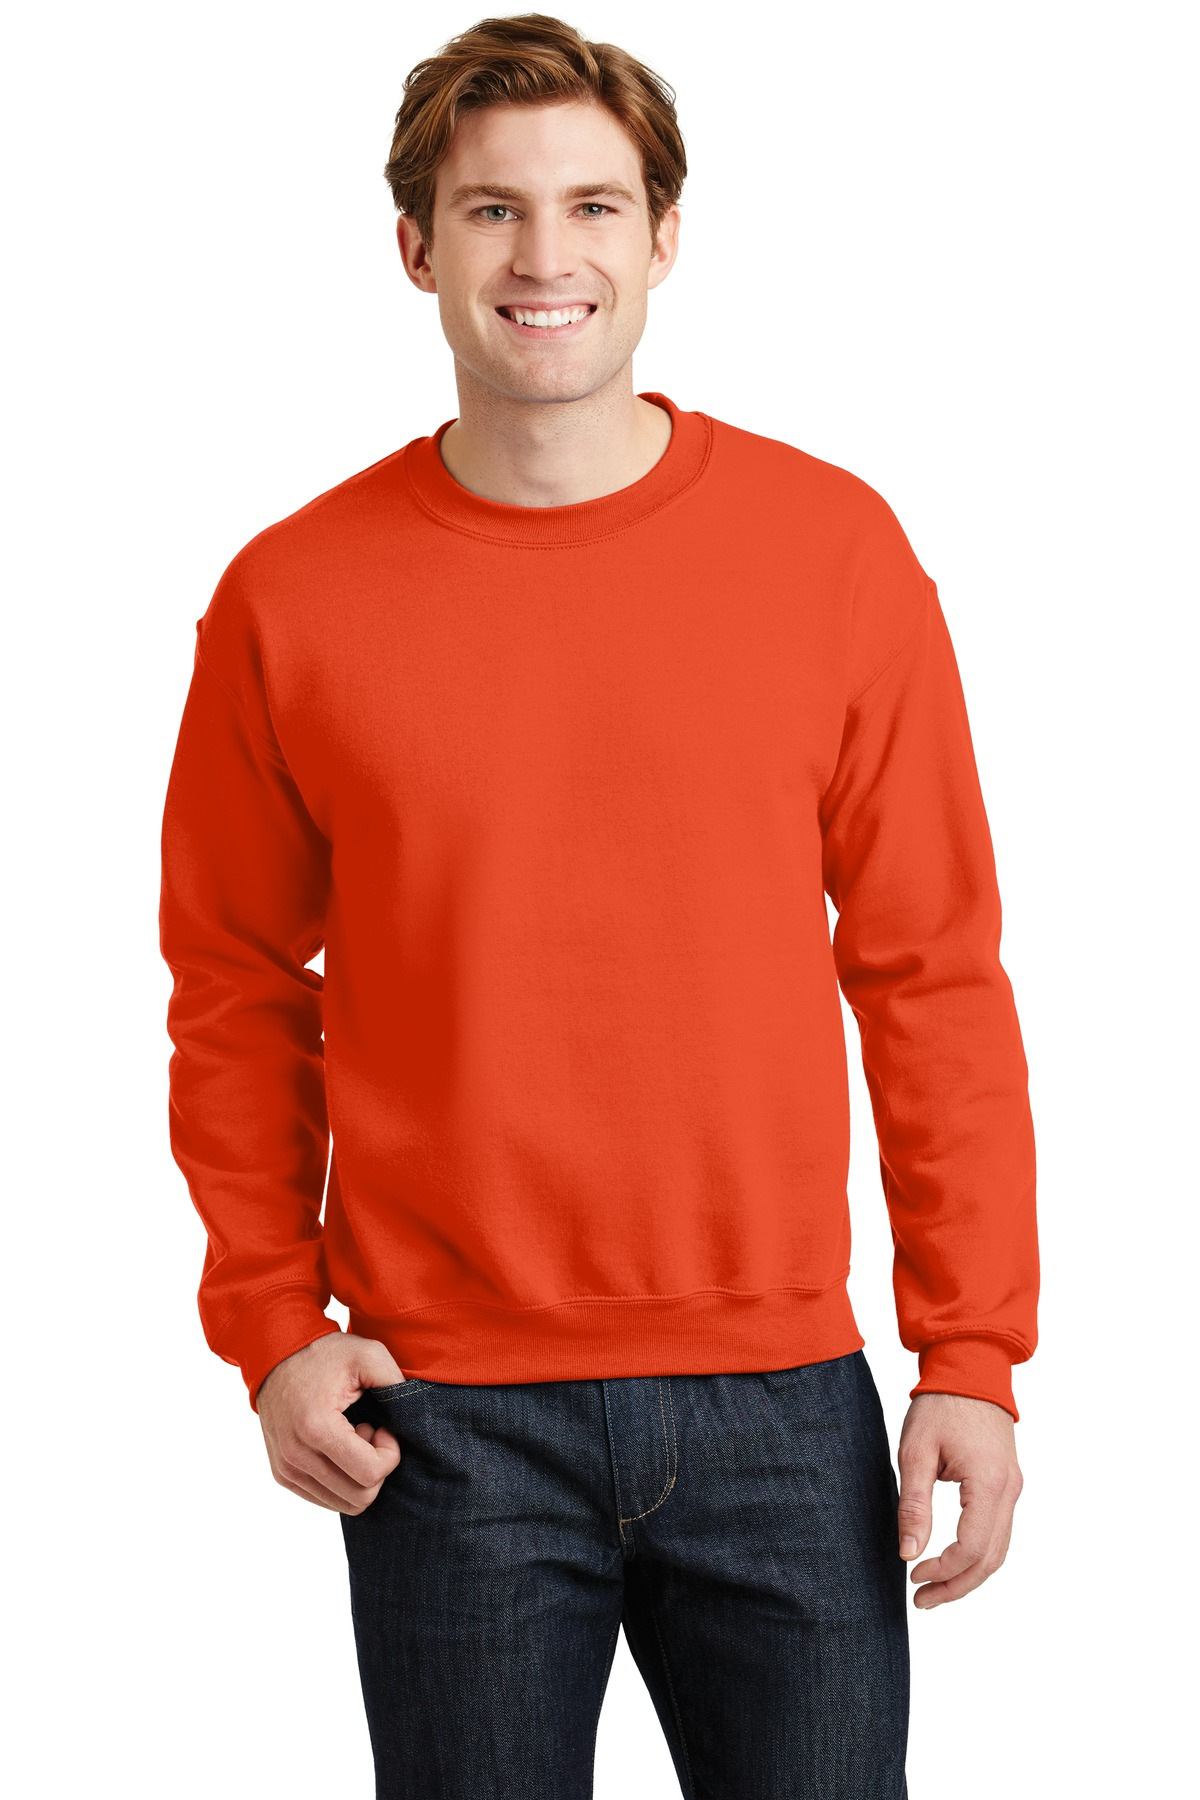 Gildan ®  - Heavy Blend™ Crewneck Sweatshirt.  18000 - Orange